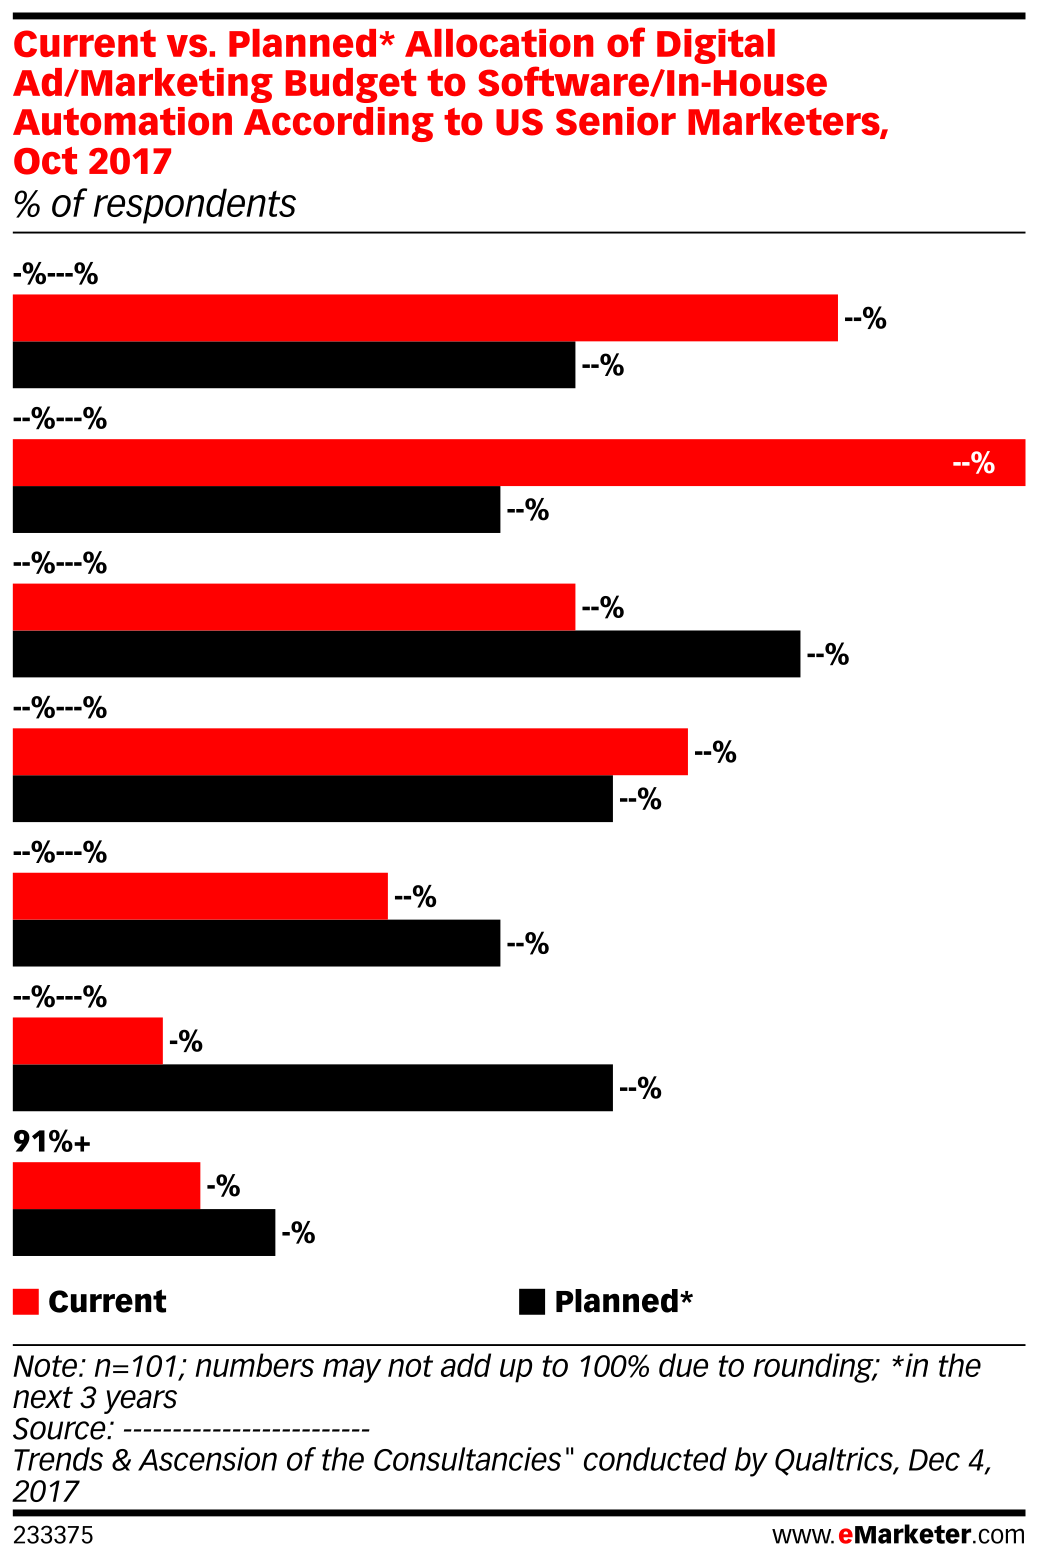 Current vs. Planned* Allocation of Digital Ad/Marketing Budget to Software/In-House Automation According to US Senior Marketers, Oct 2017 (% of respondents)